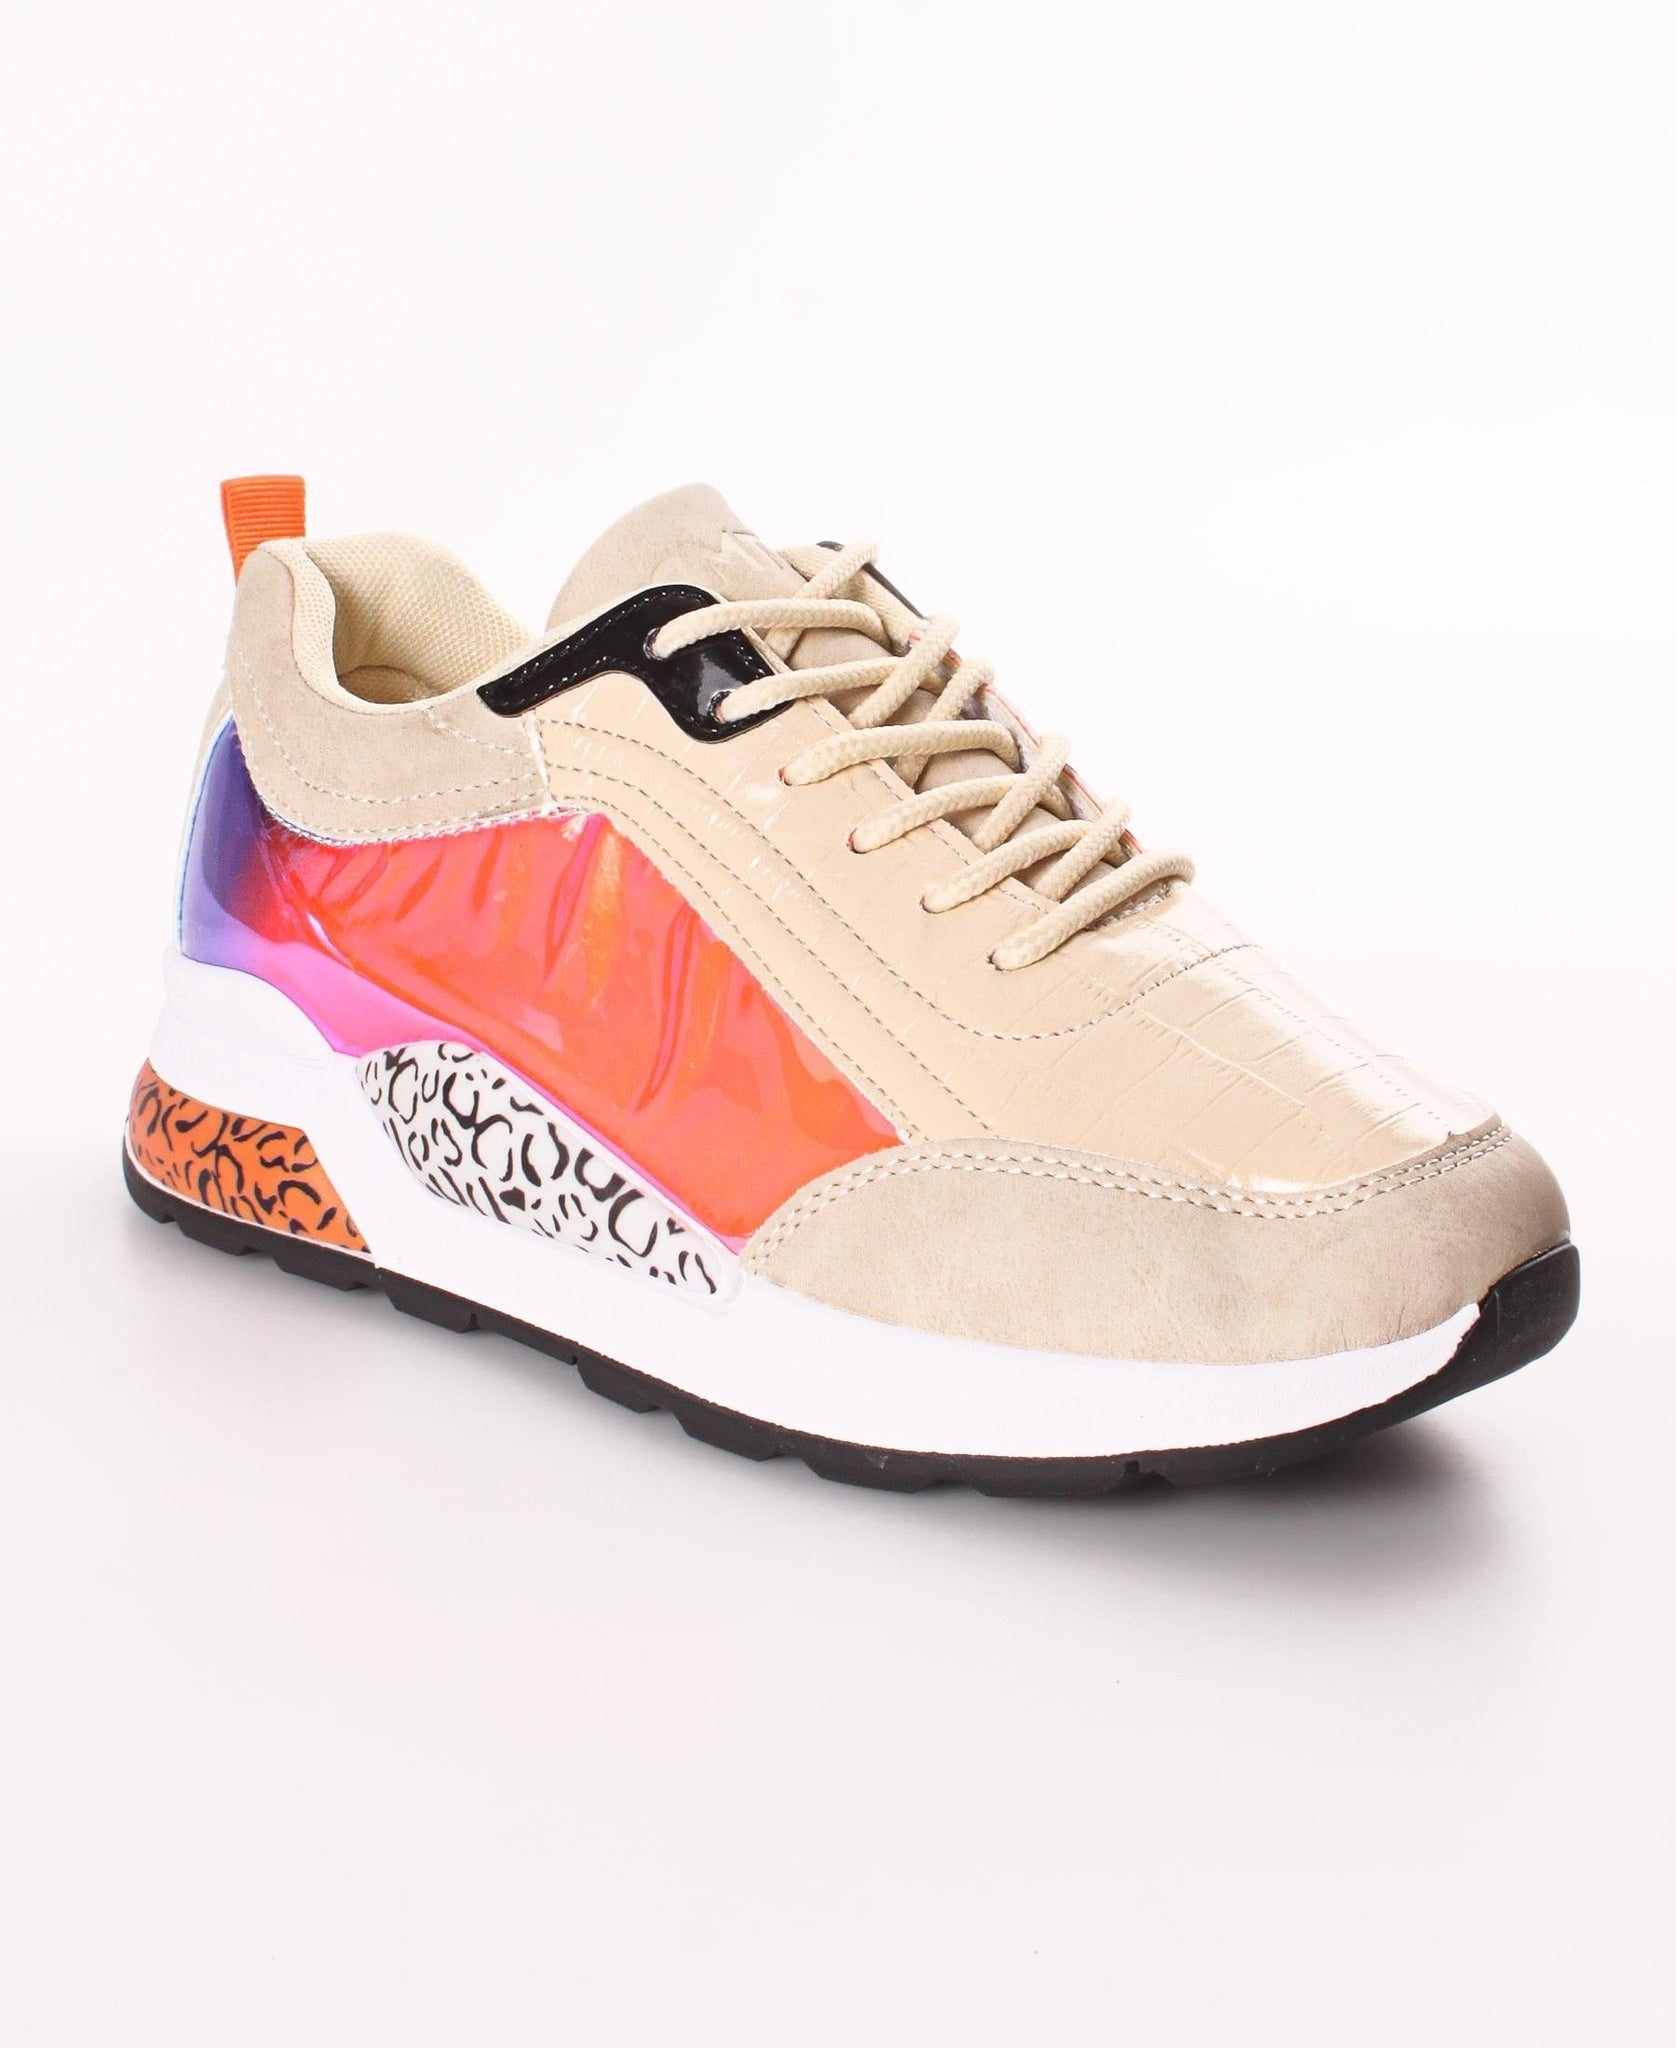 Ladies' Wild Sneakers - Nude